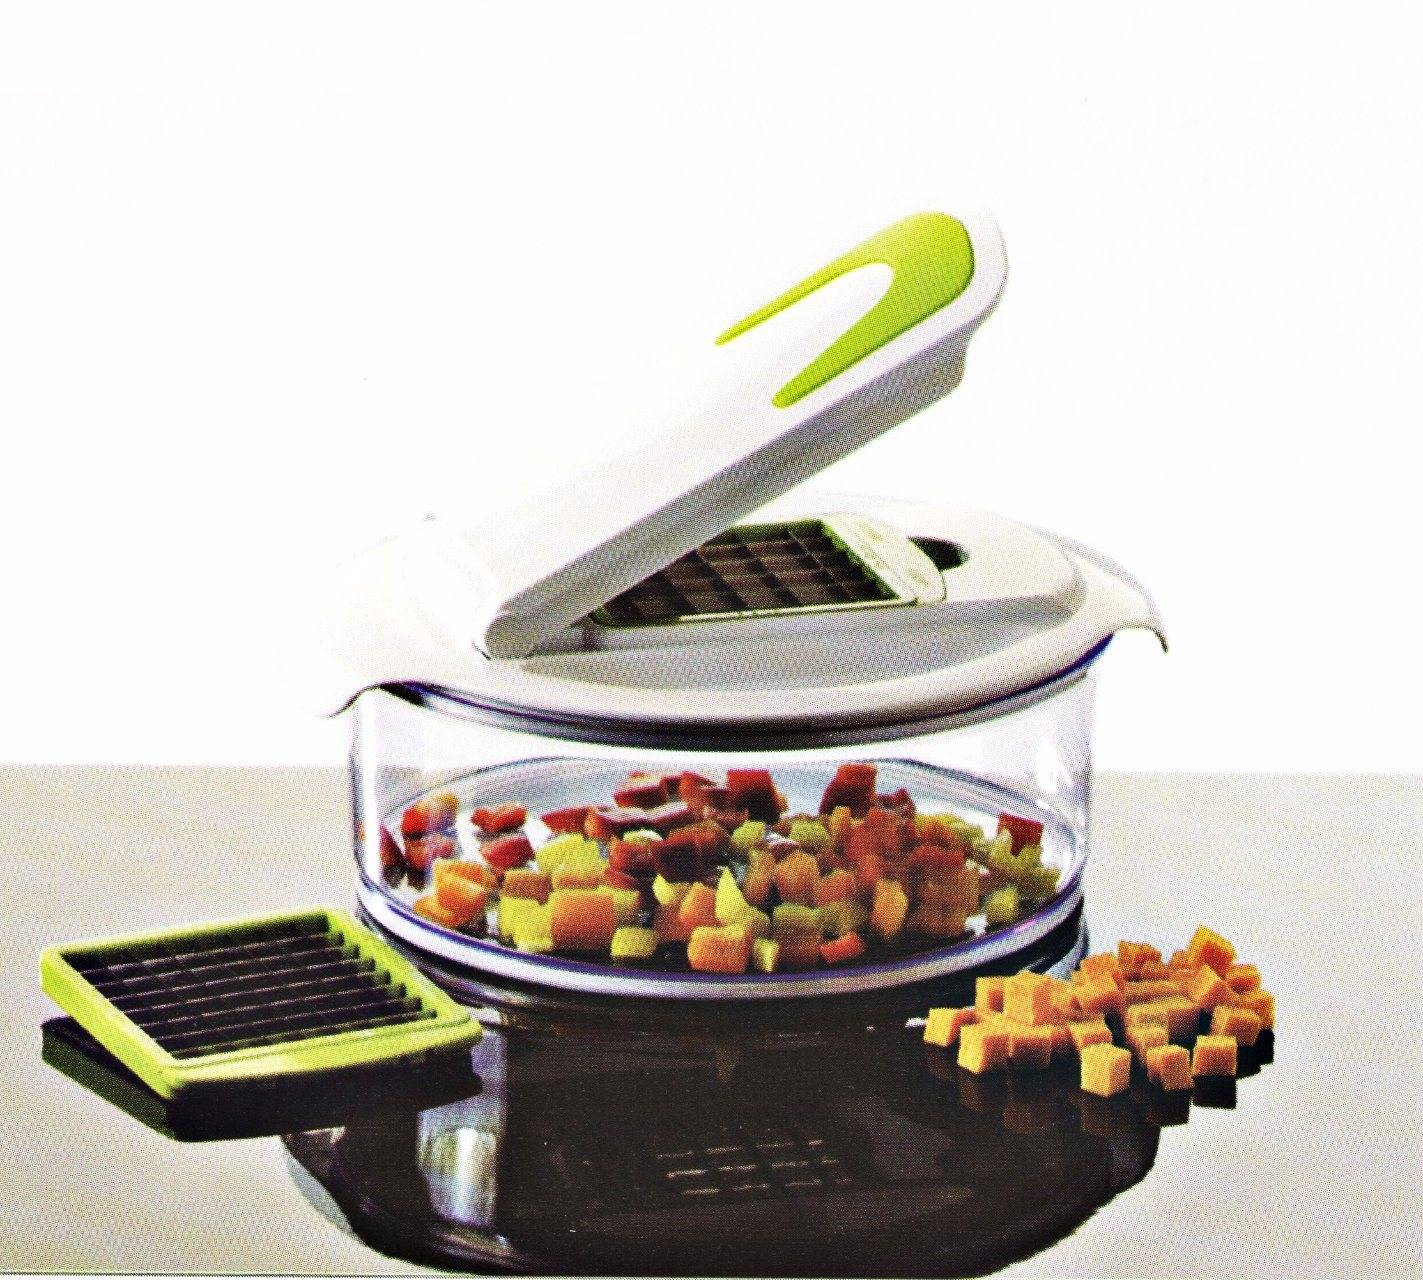 Plastic Vegetable Chopper Dice and Slice Cutting Food Machine Cg069